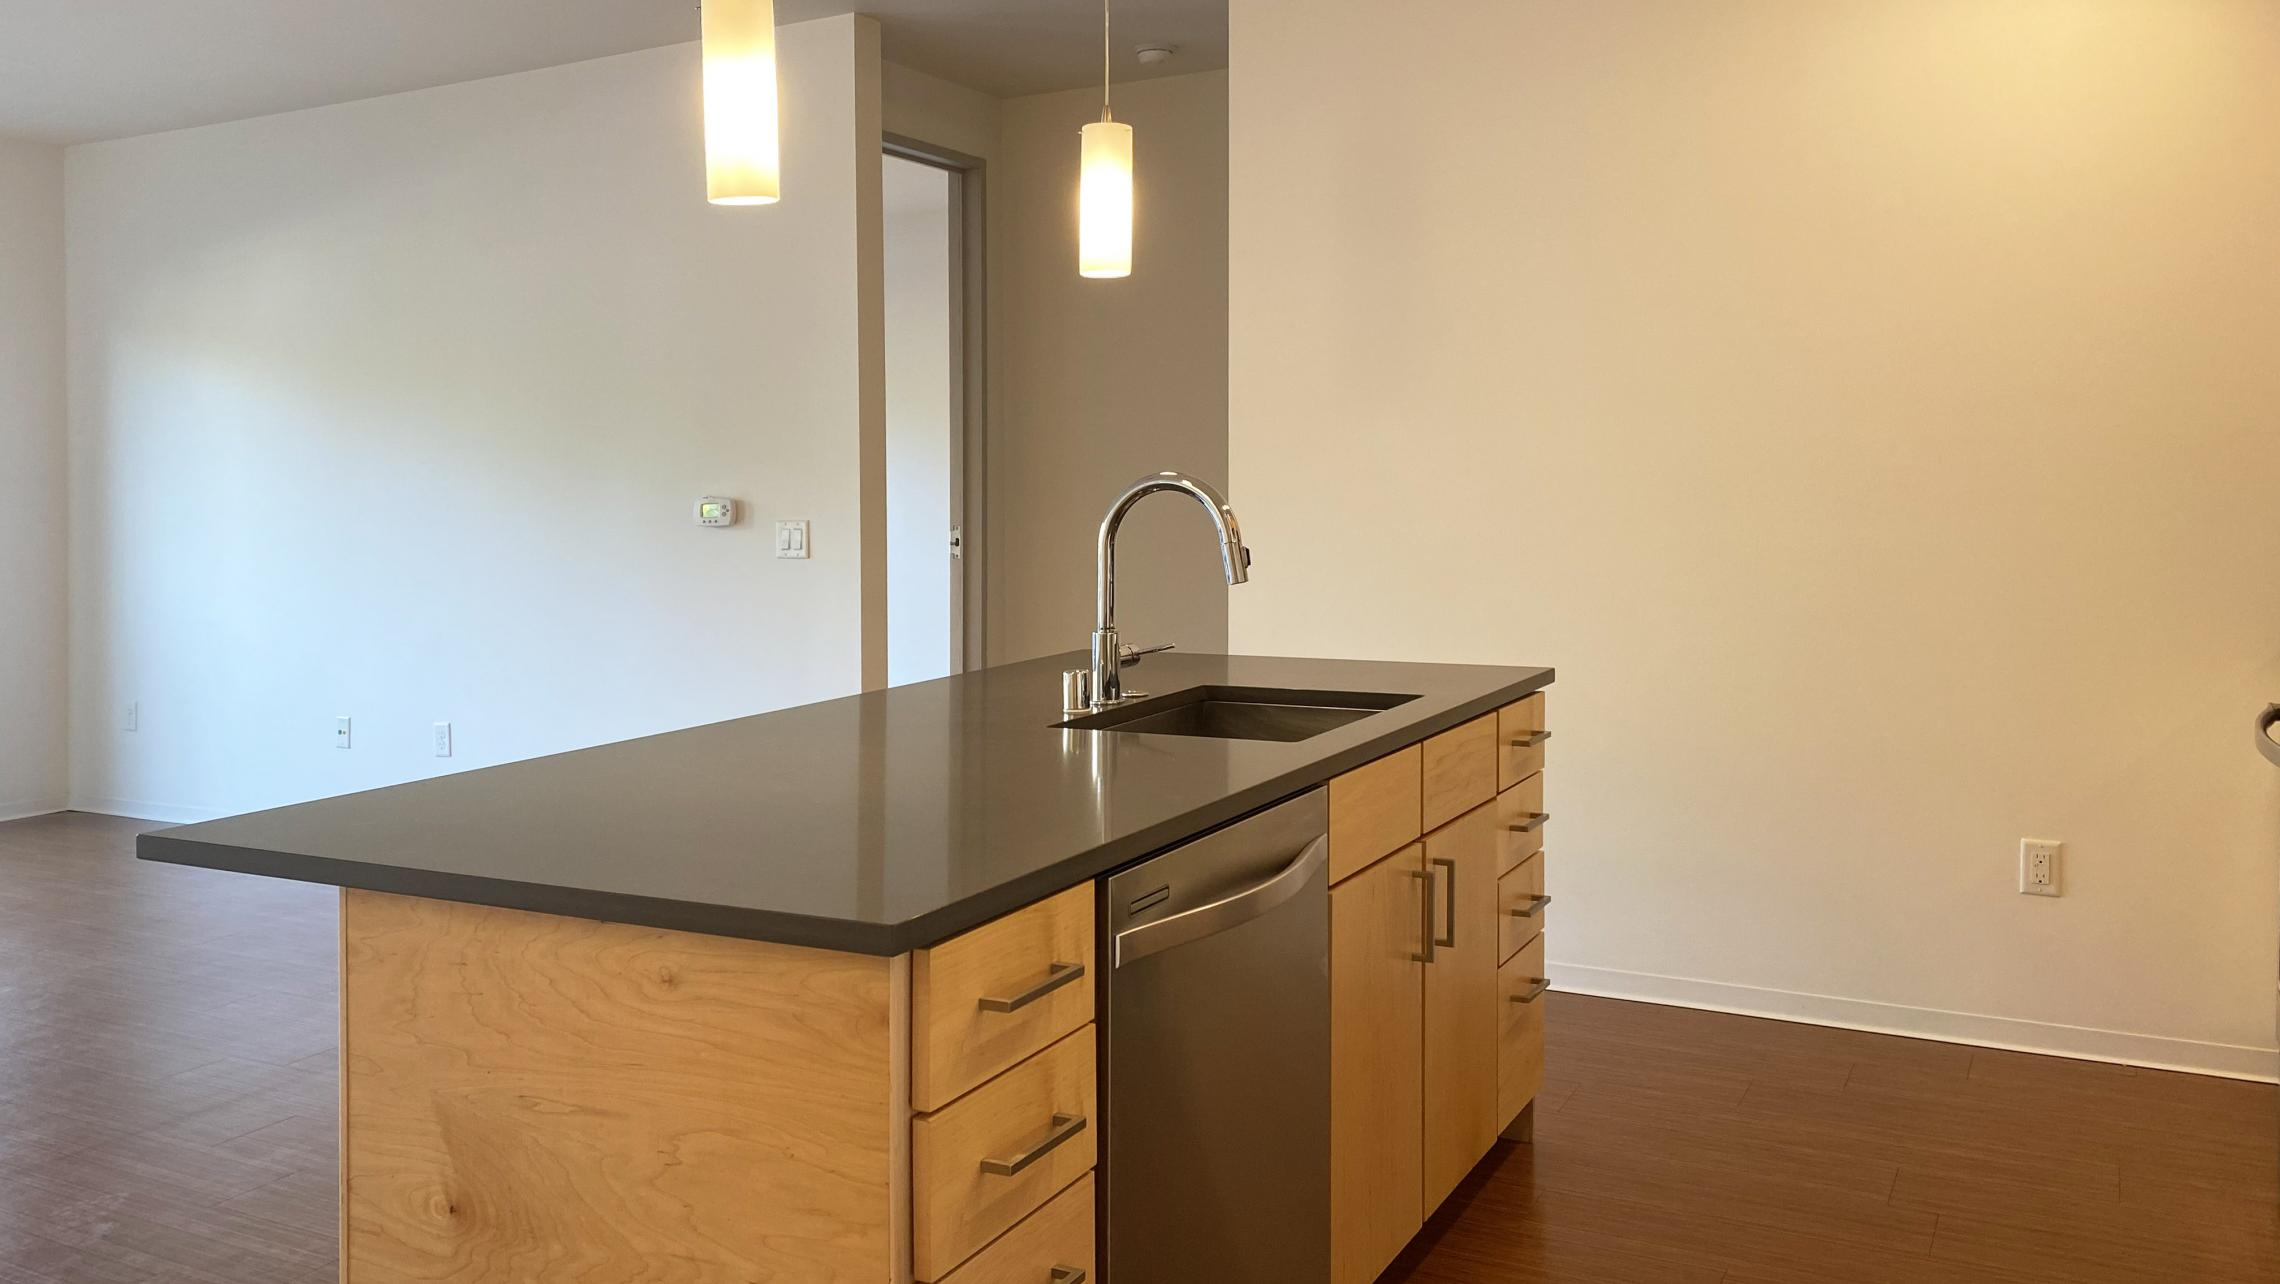 SEVEN27-at-The-Yards-Apartment-116-One-Bedroom-Modern-Upscale-Luxury-Design-Radiant-Heating-Fitness-Lounge-Fireplace-Courtyard-Downtown-Madison-Cats-Dogs-Lifestyle-Natural-Light